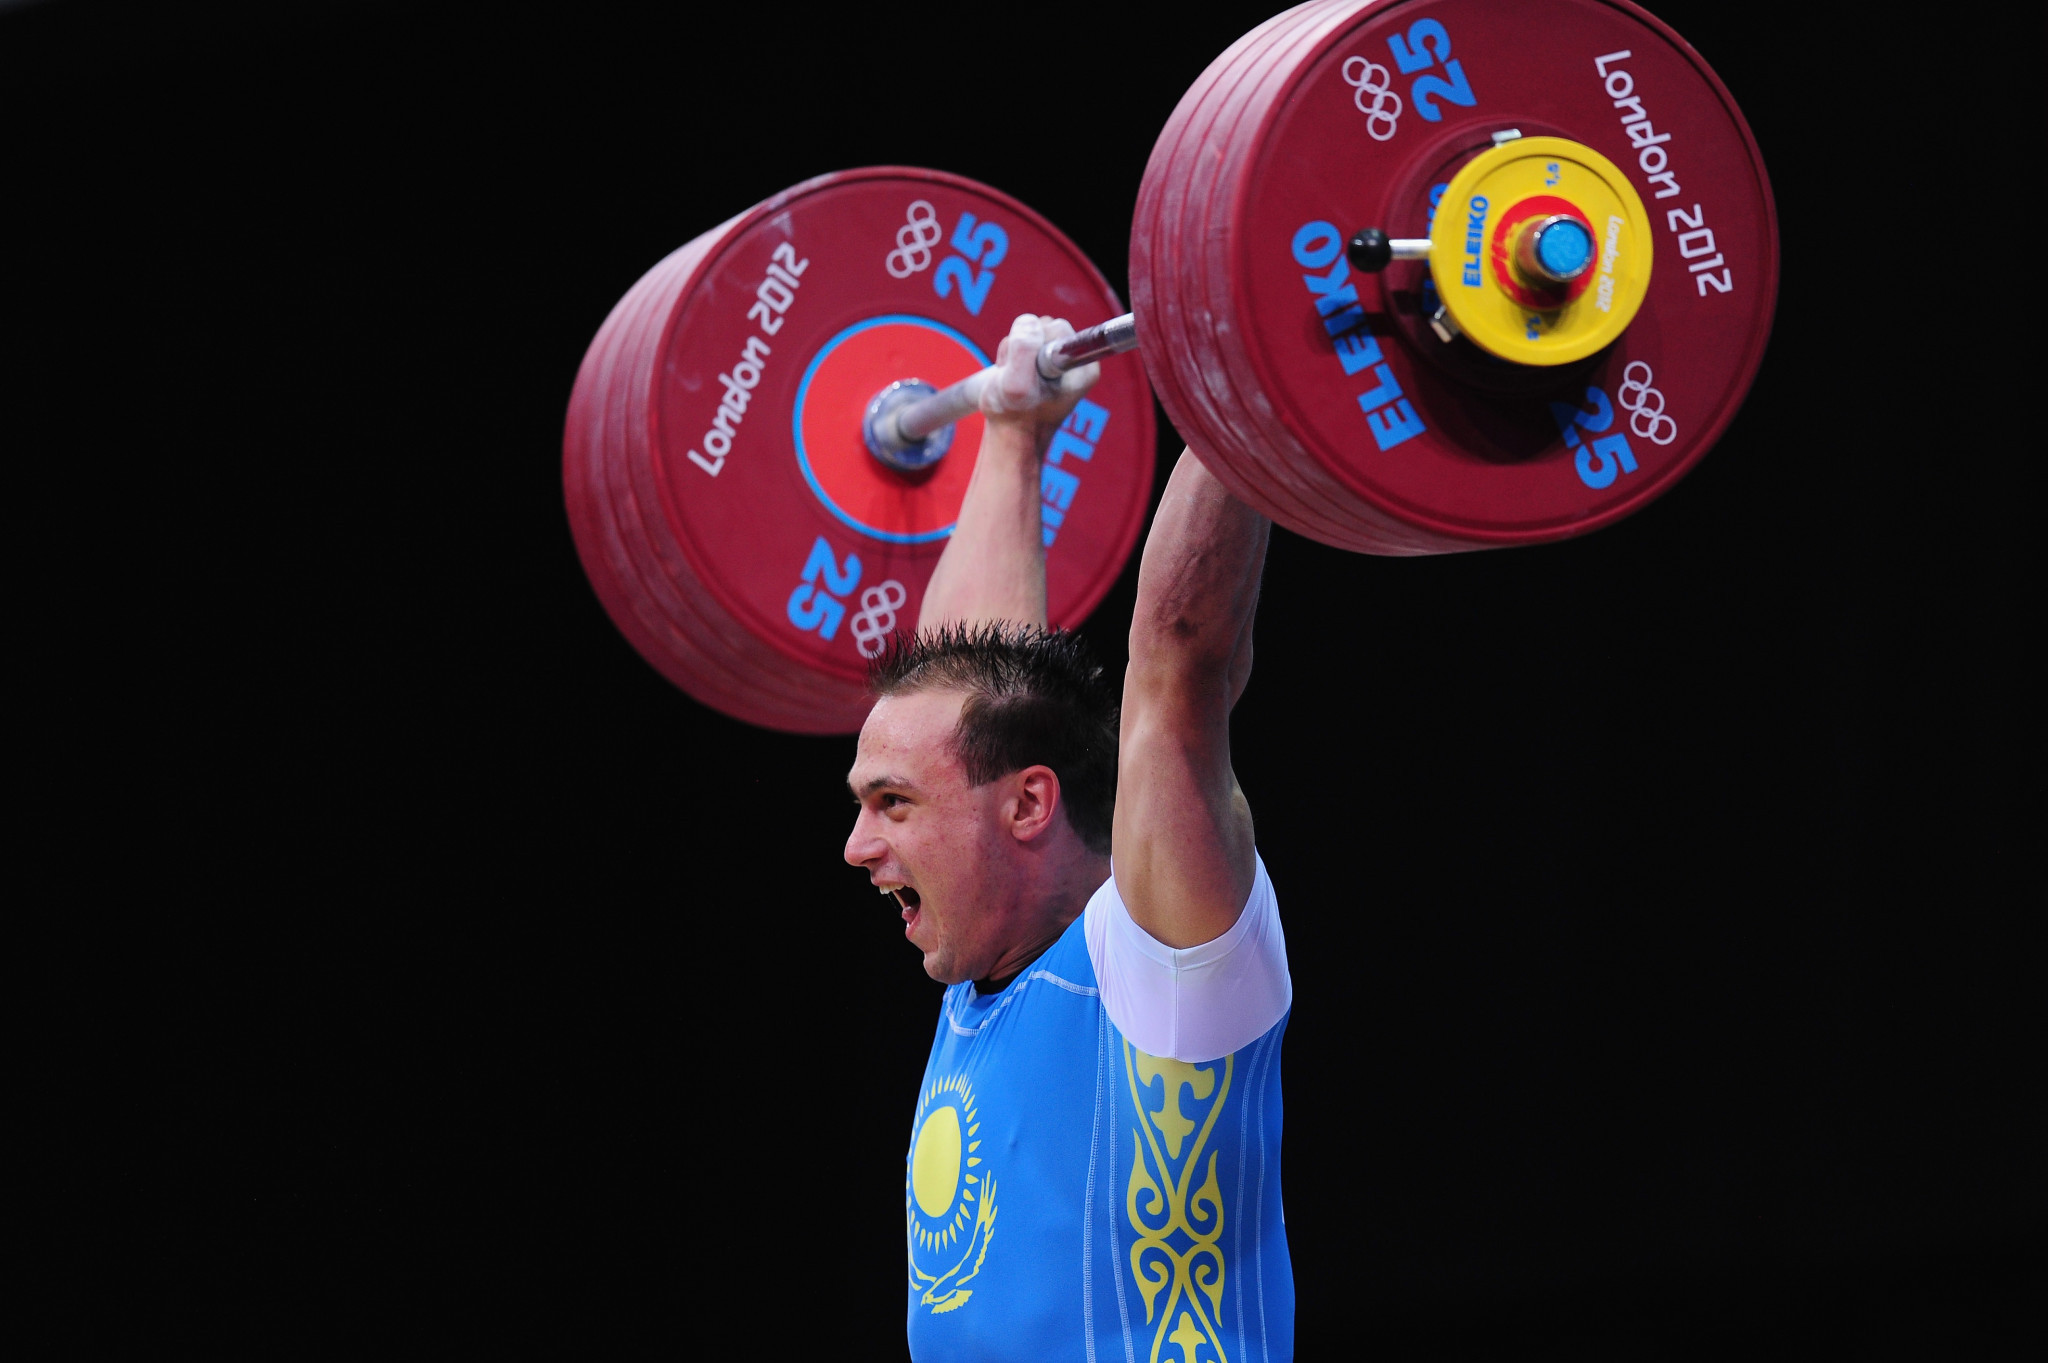 Ilya Ilyin of Kazakhstan sets a new world record and wins the gold medal in the men's 94kg weightlifting final at the London 2012 Olympic Games ©Getty Images